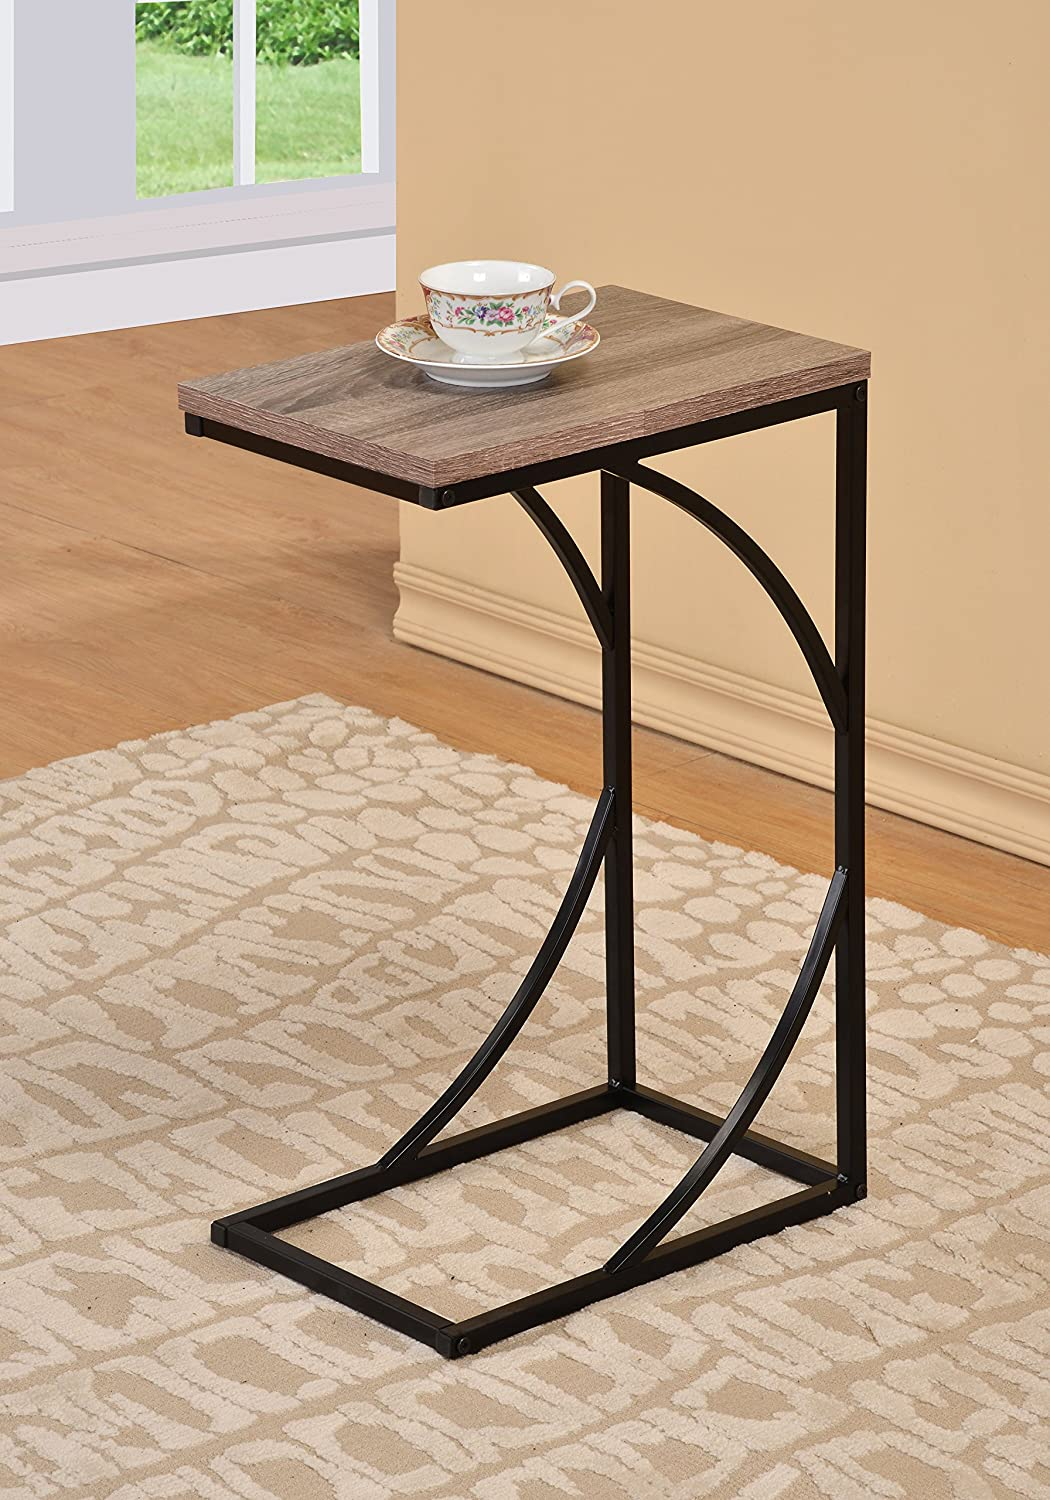 Reclaimed Wood Look Finish Black Frame Snack Side Magazine End Table